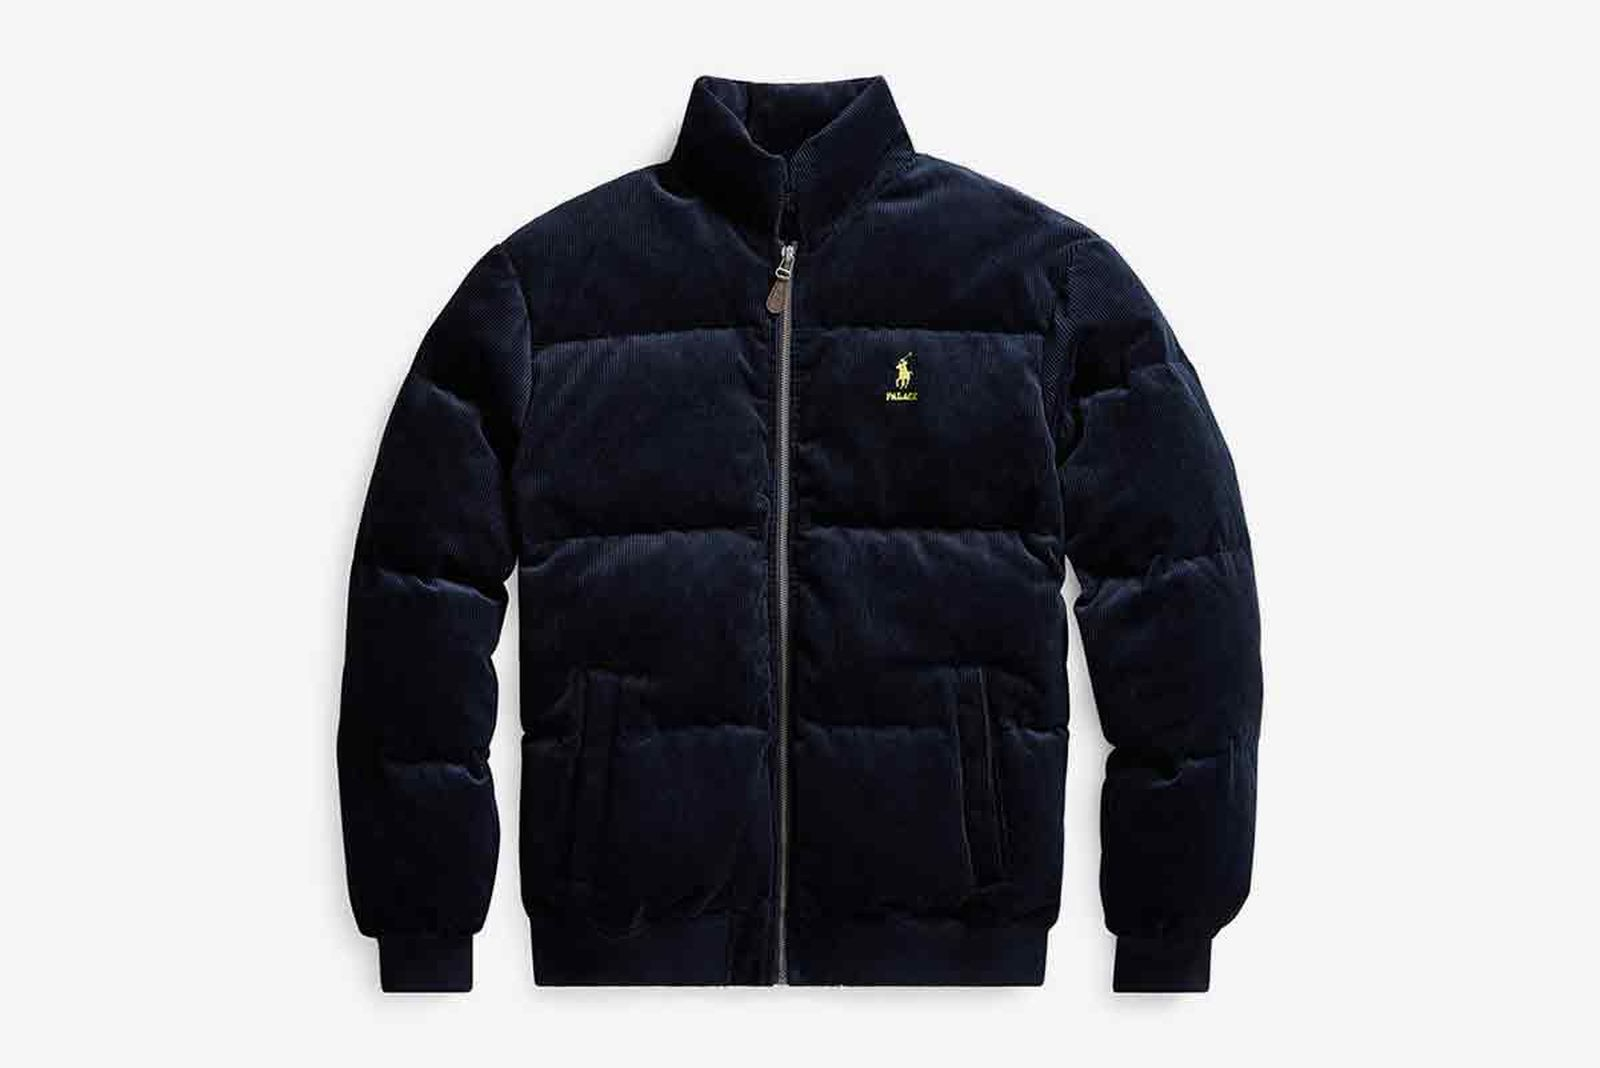 palace polo every piece polo ralph lauren